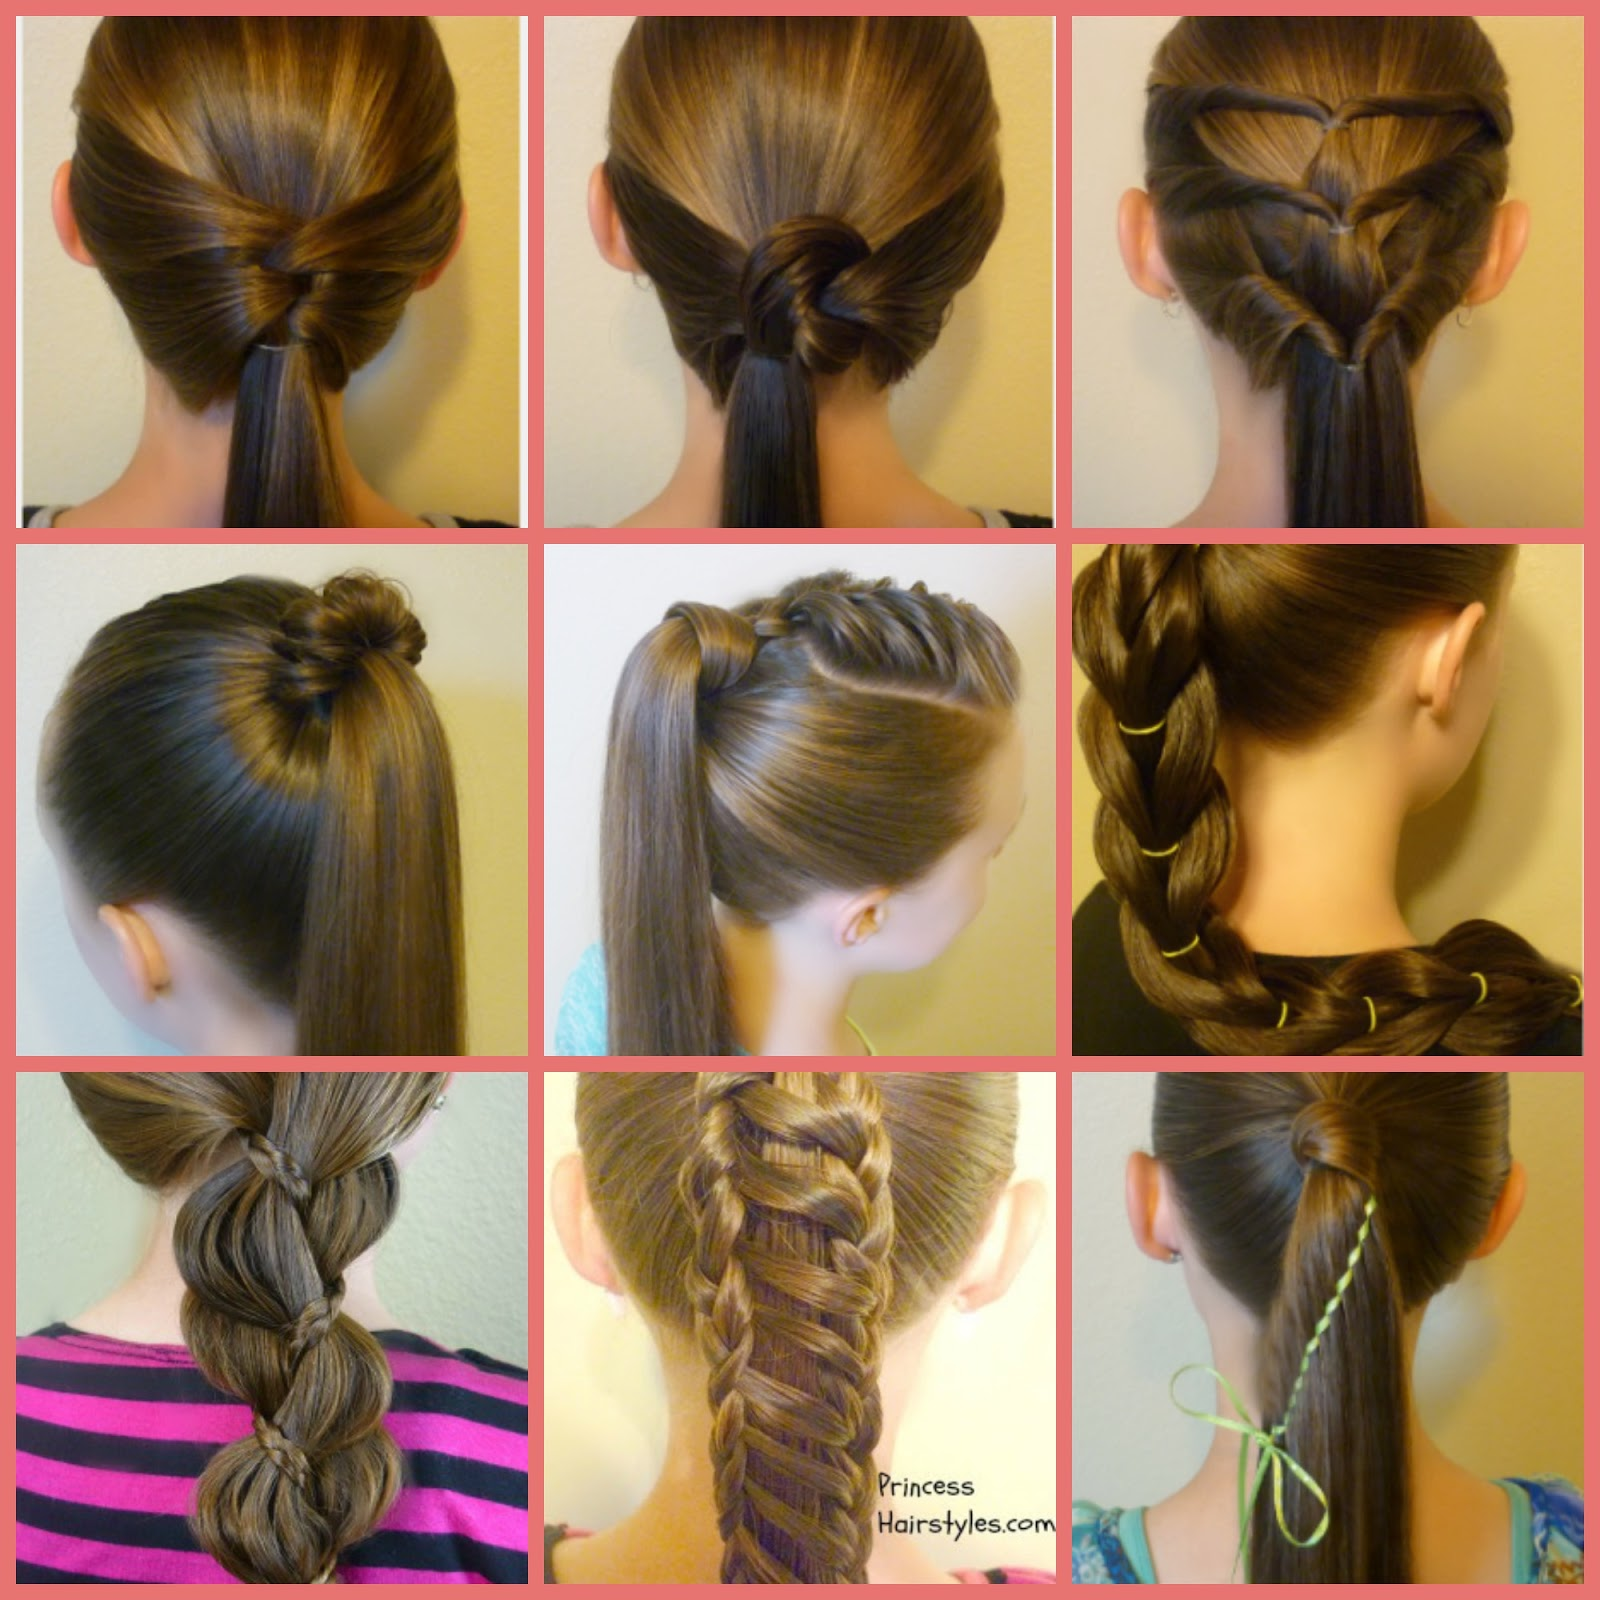 10 Easy Ponytail Hairstyles Hairstyles For Girls